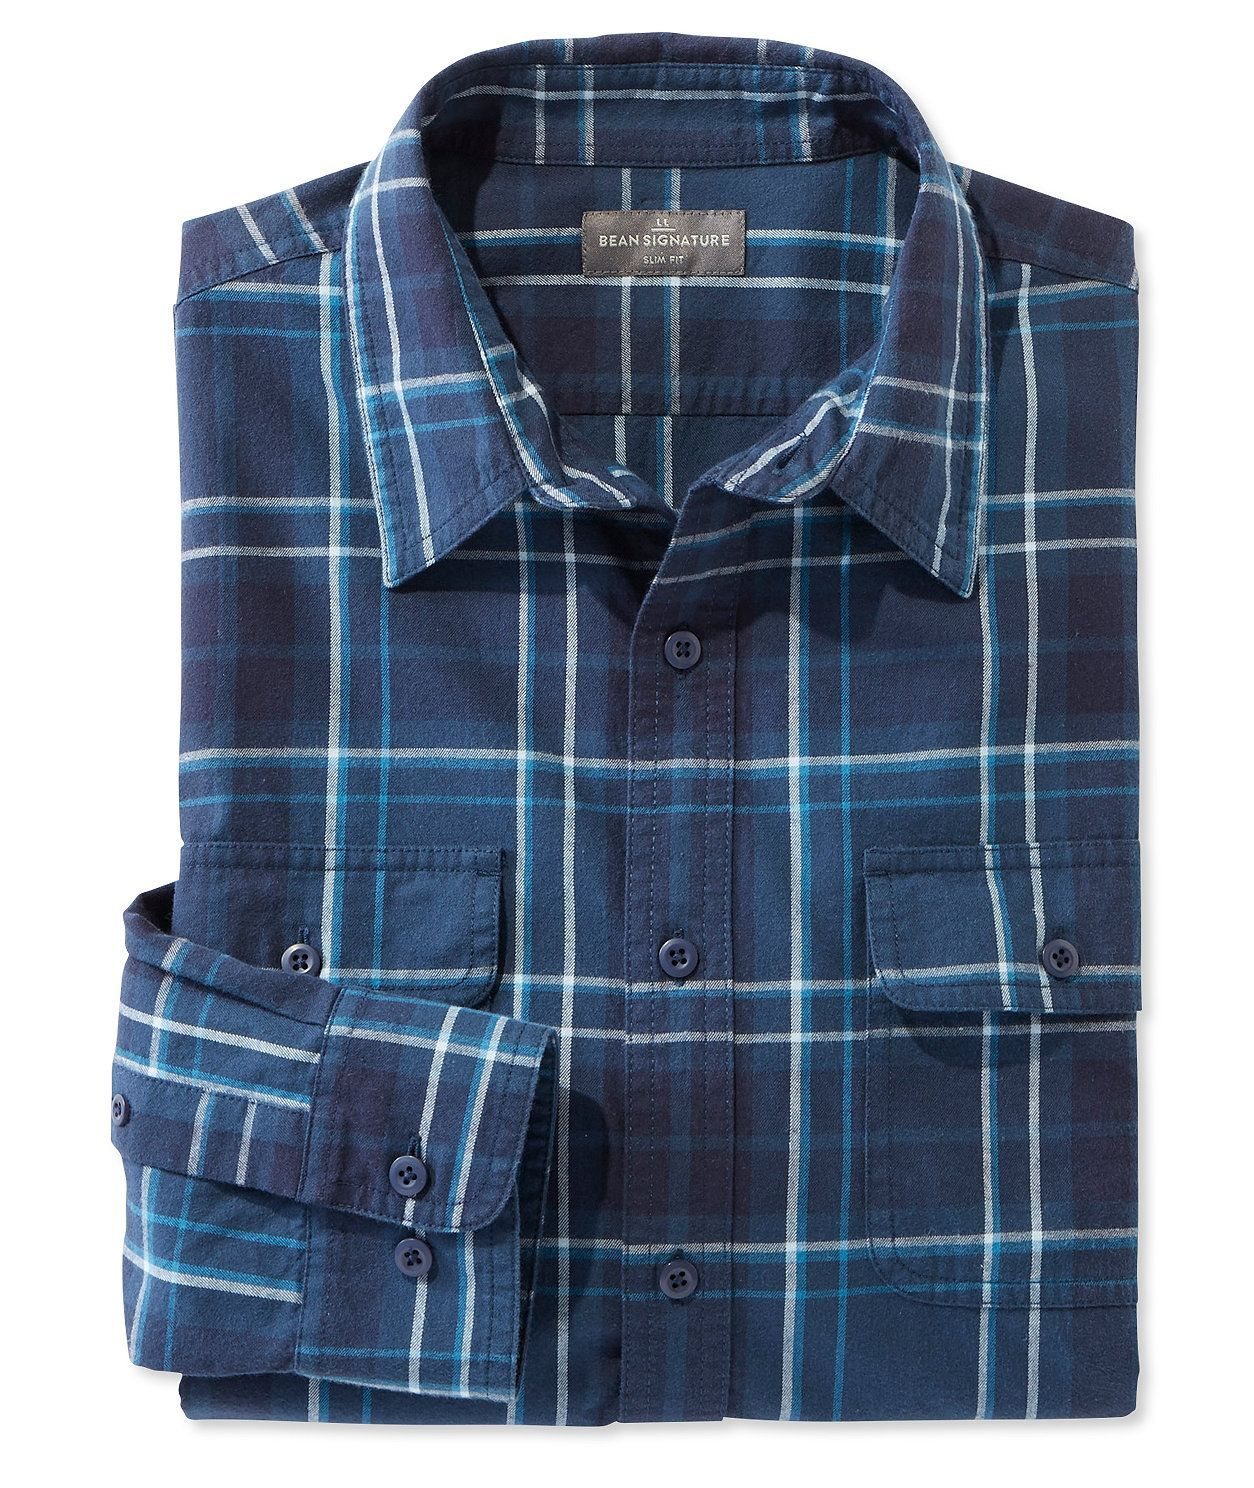 Flannel shirts at kohl's  Signature Castine Flannel Shirt  Flannel shirts and Products